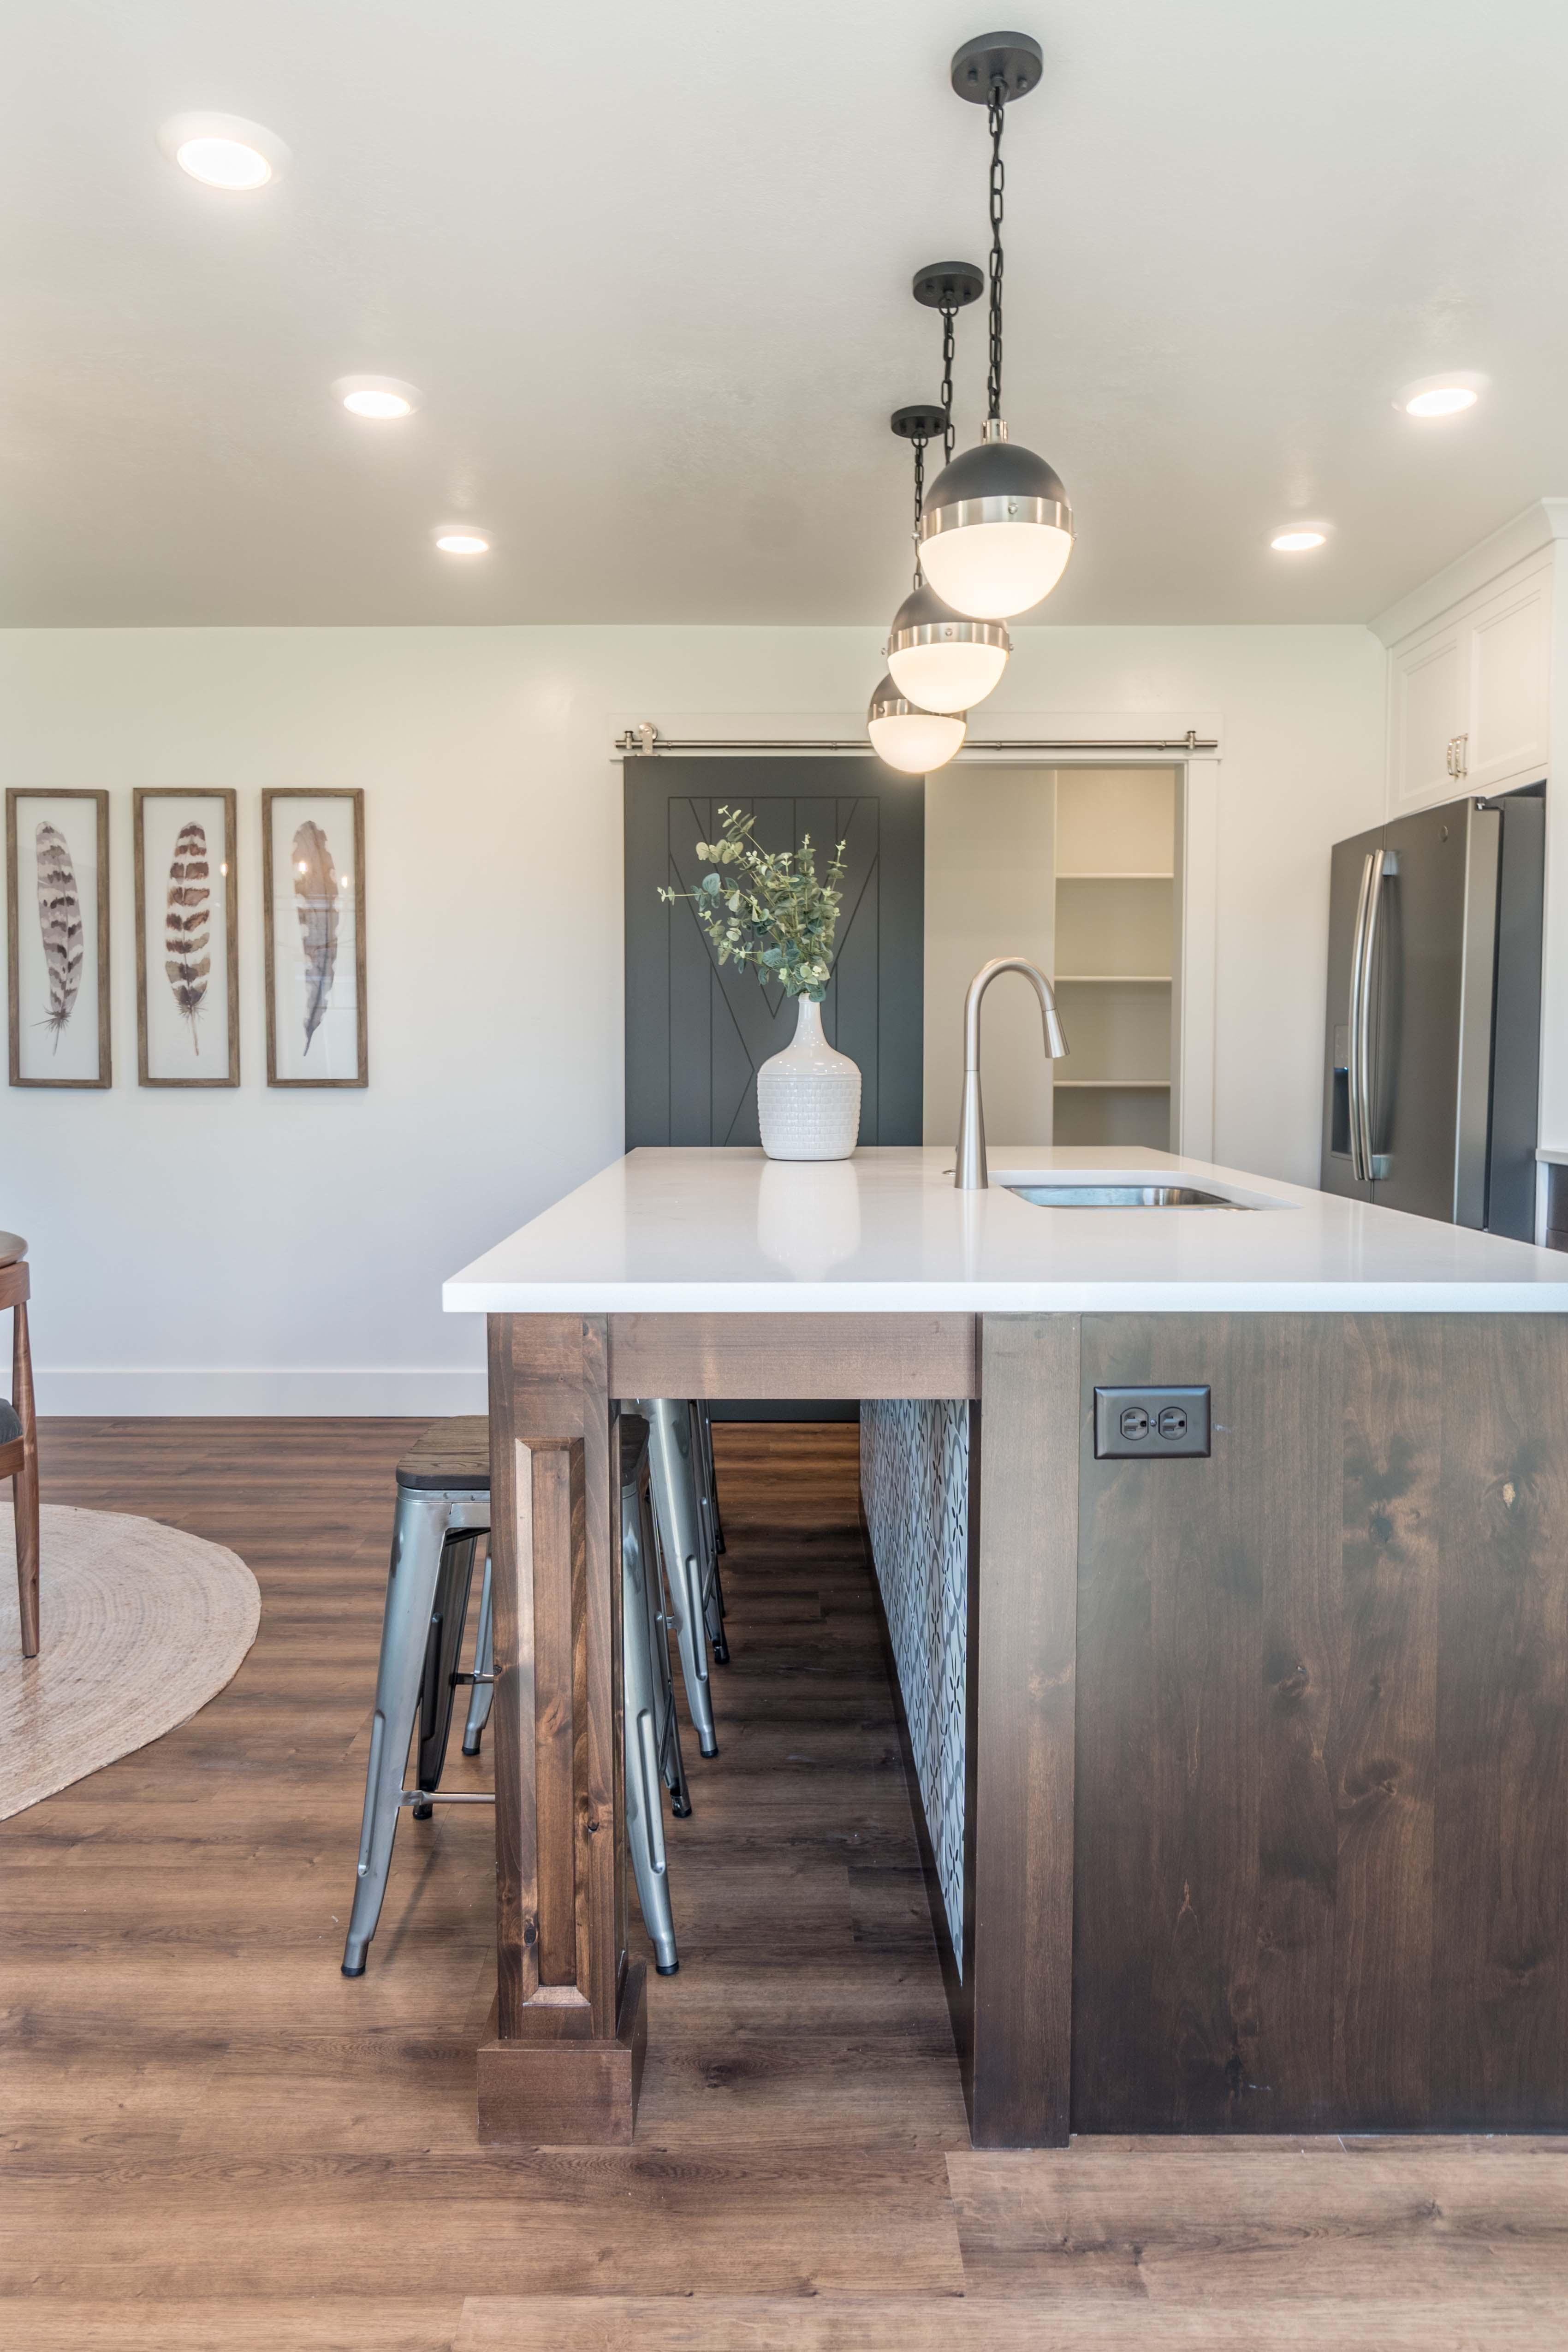 Kitchen featured in the Glendale (SOG) By Visionary Homes in Logan, UT